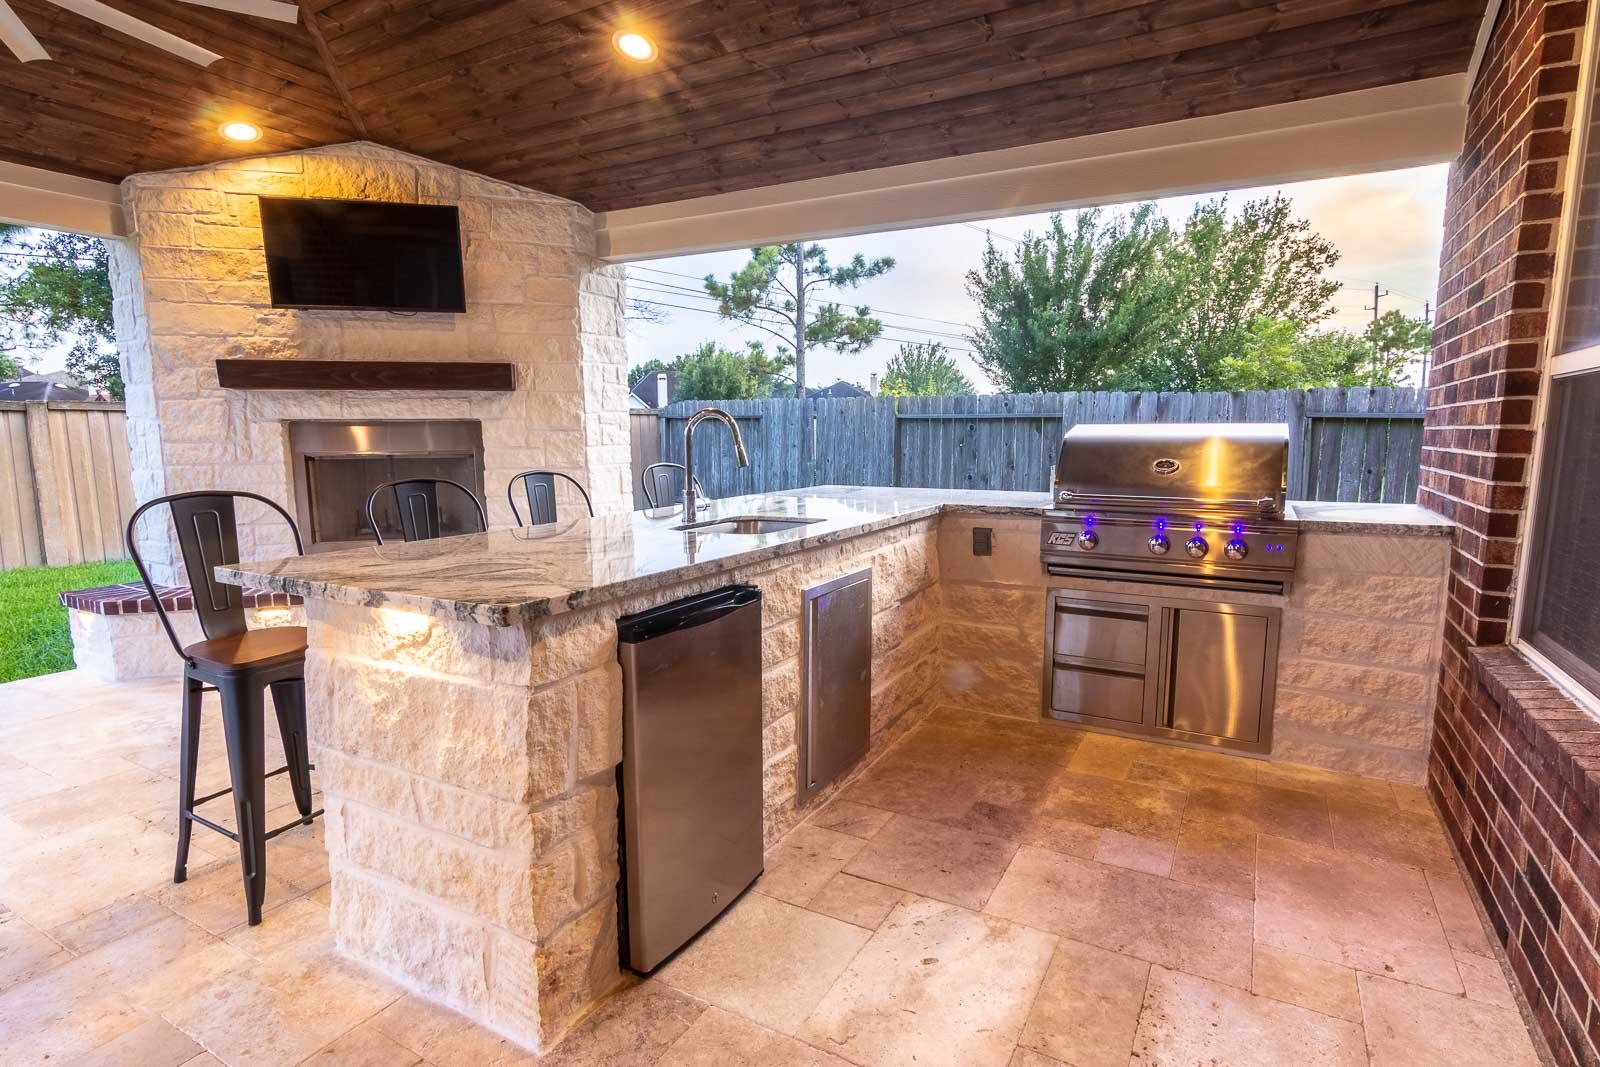 Designing An Outdoor Kitchen To Your Perfection - HHI ... on Outdoor Kitchen Patio id=58004